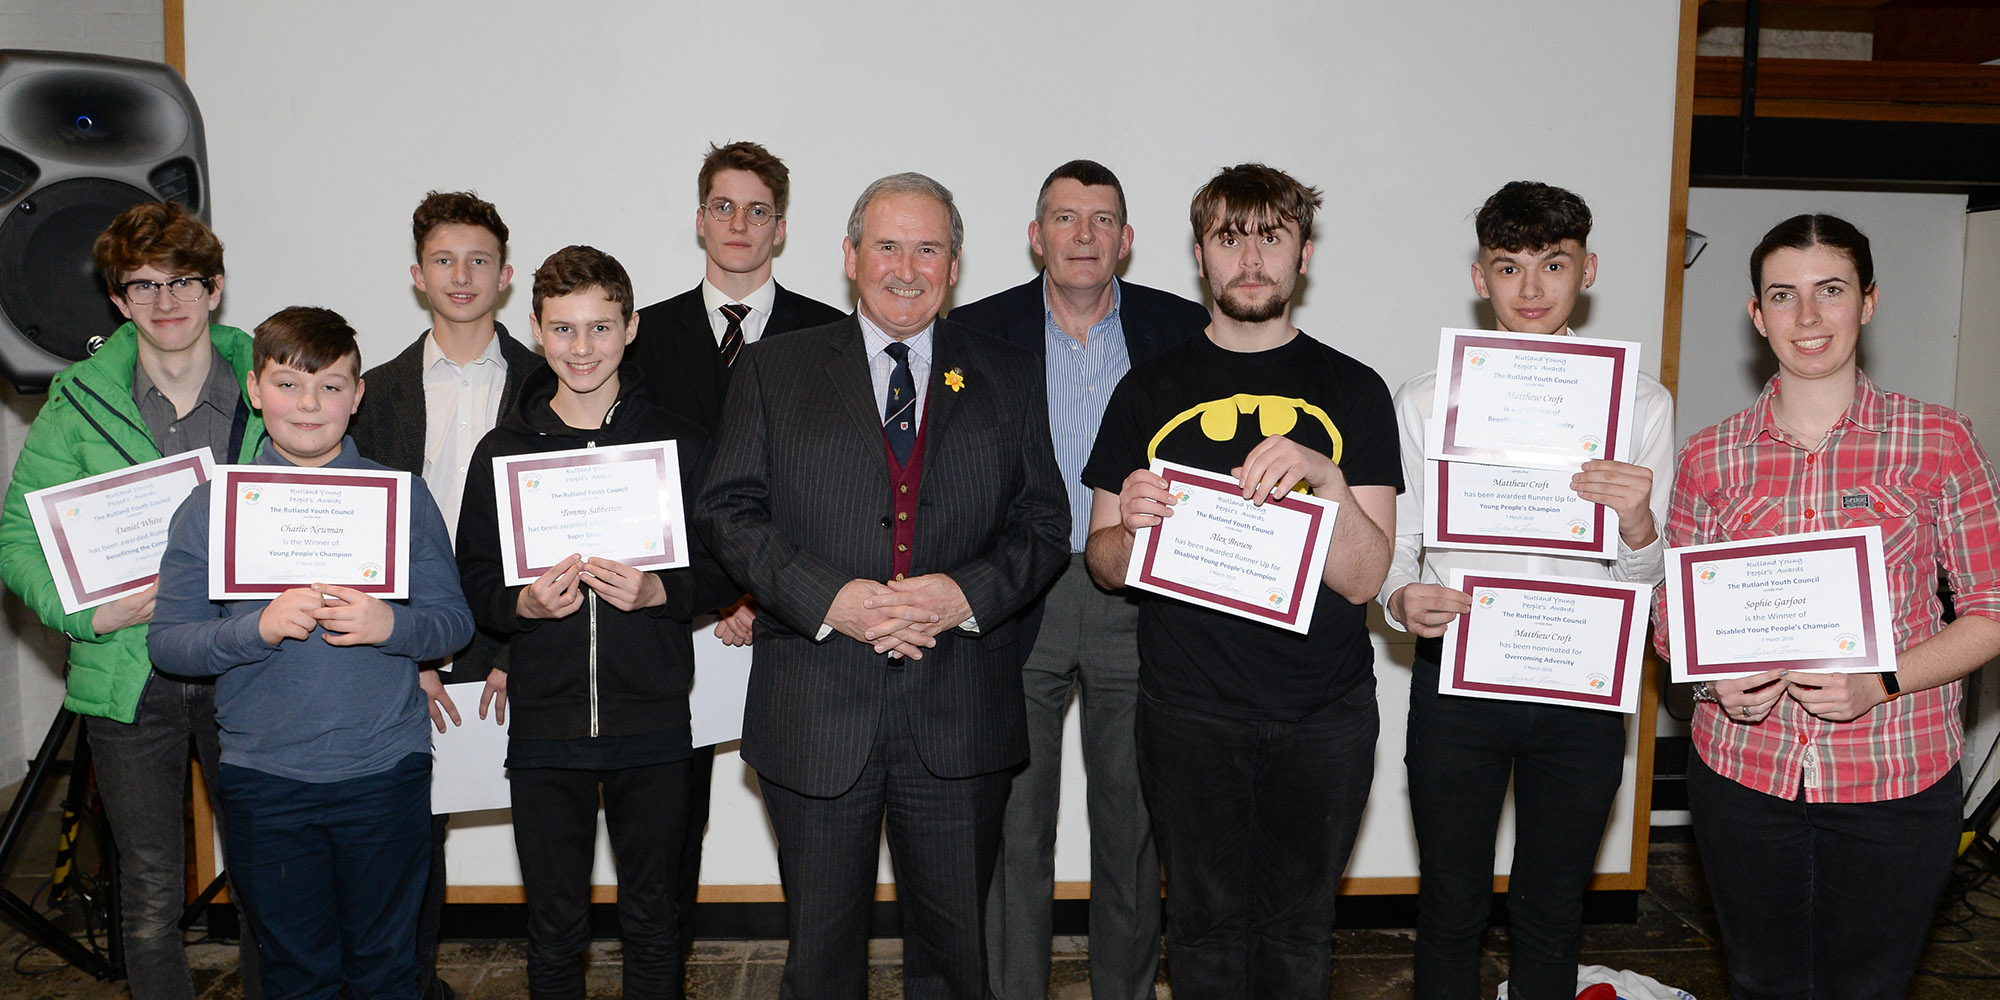 Winners of RYP Awards 2018